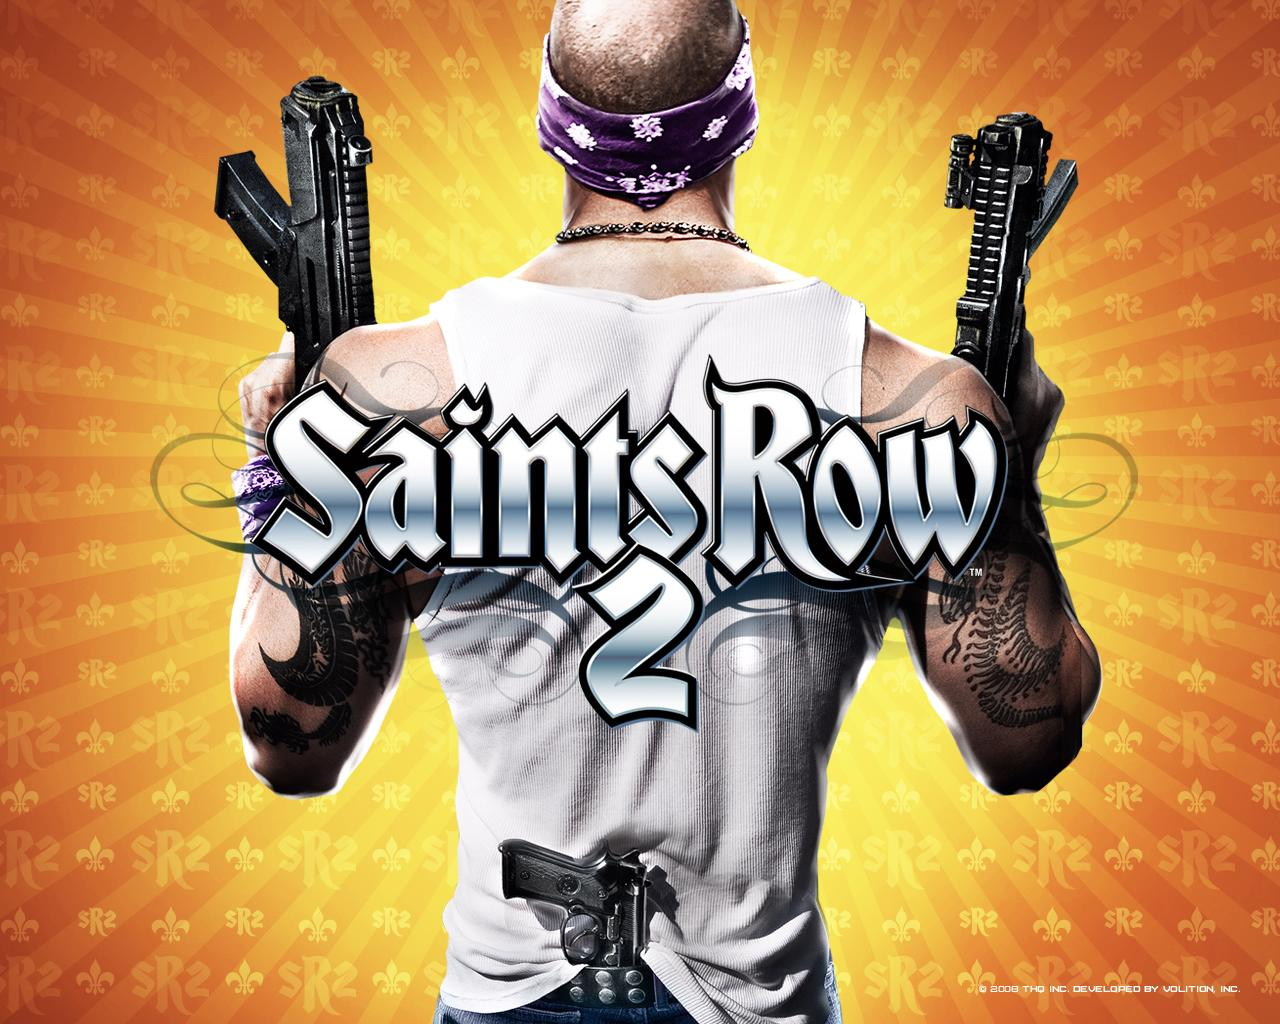 Saints Row 2 Wallpapers - Games Wallpapers #2